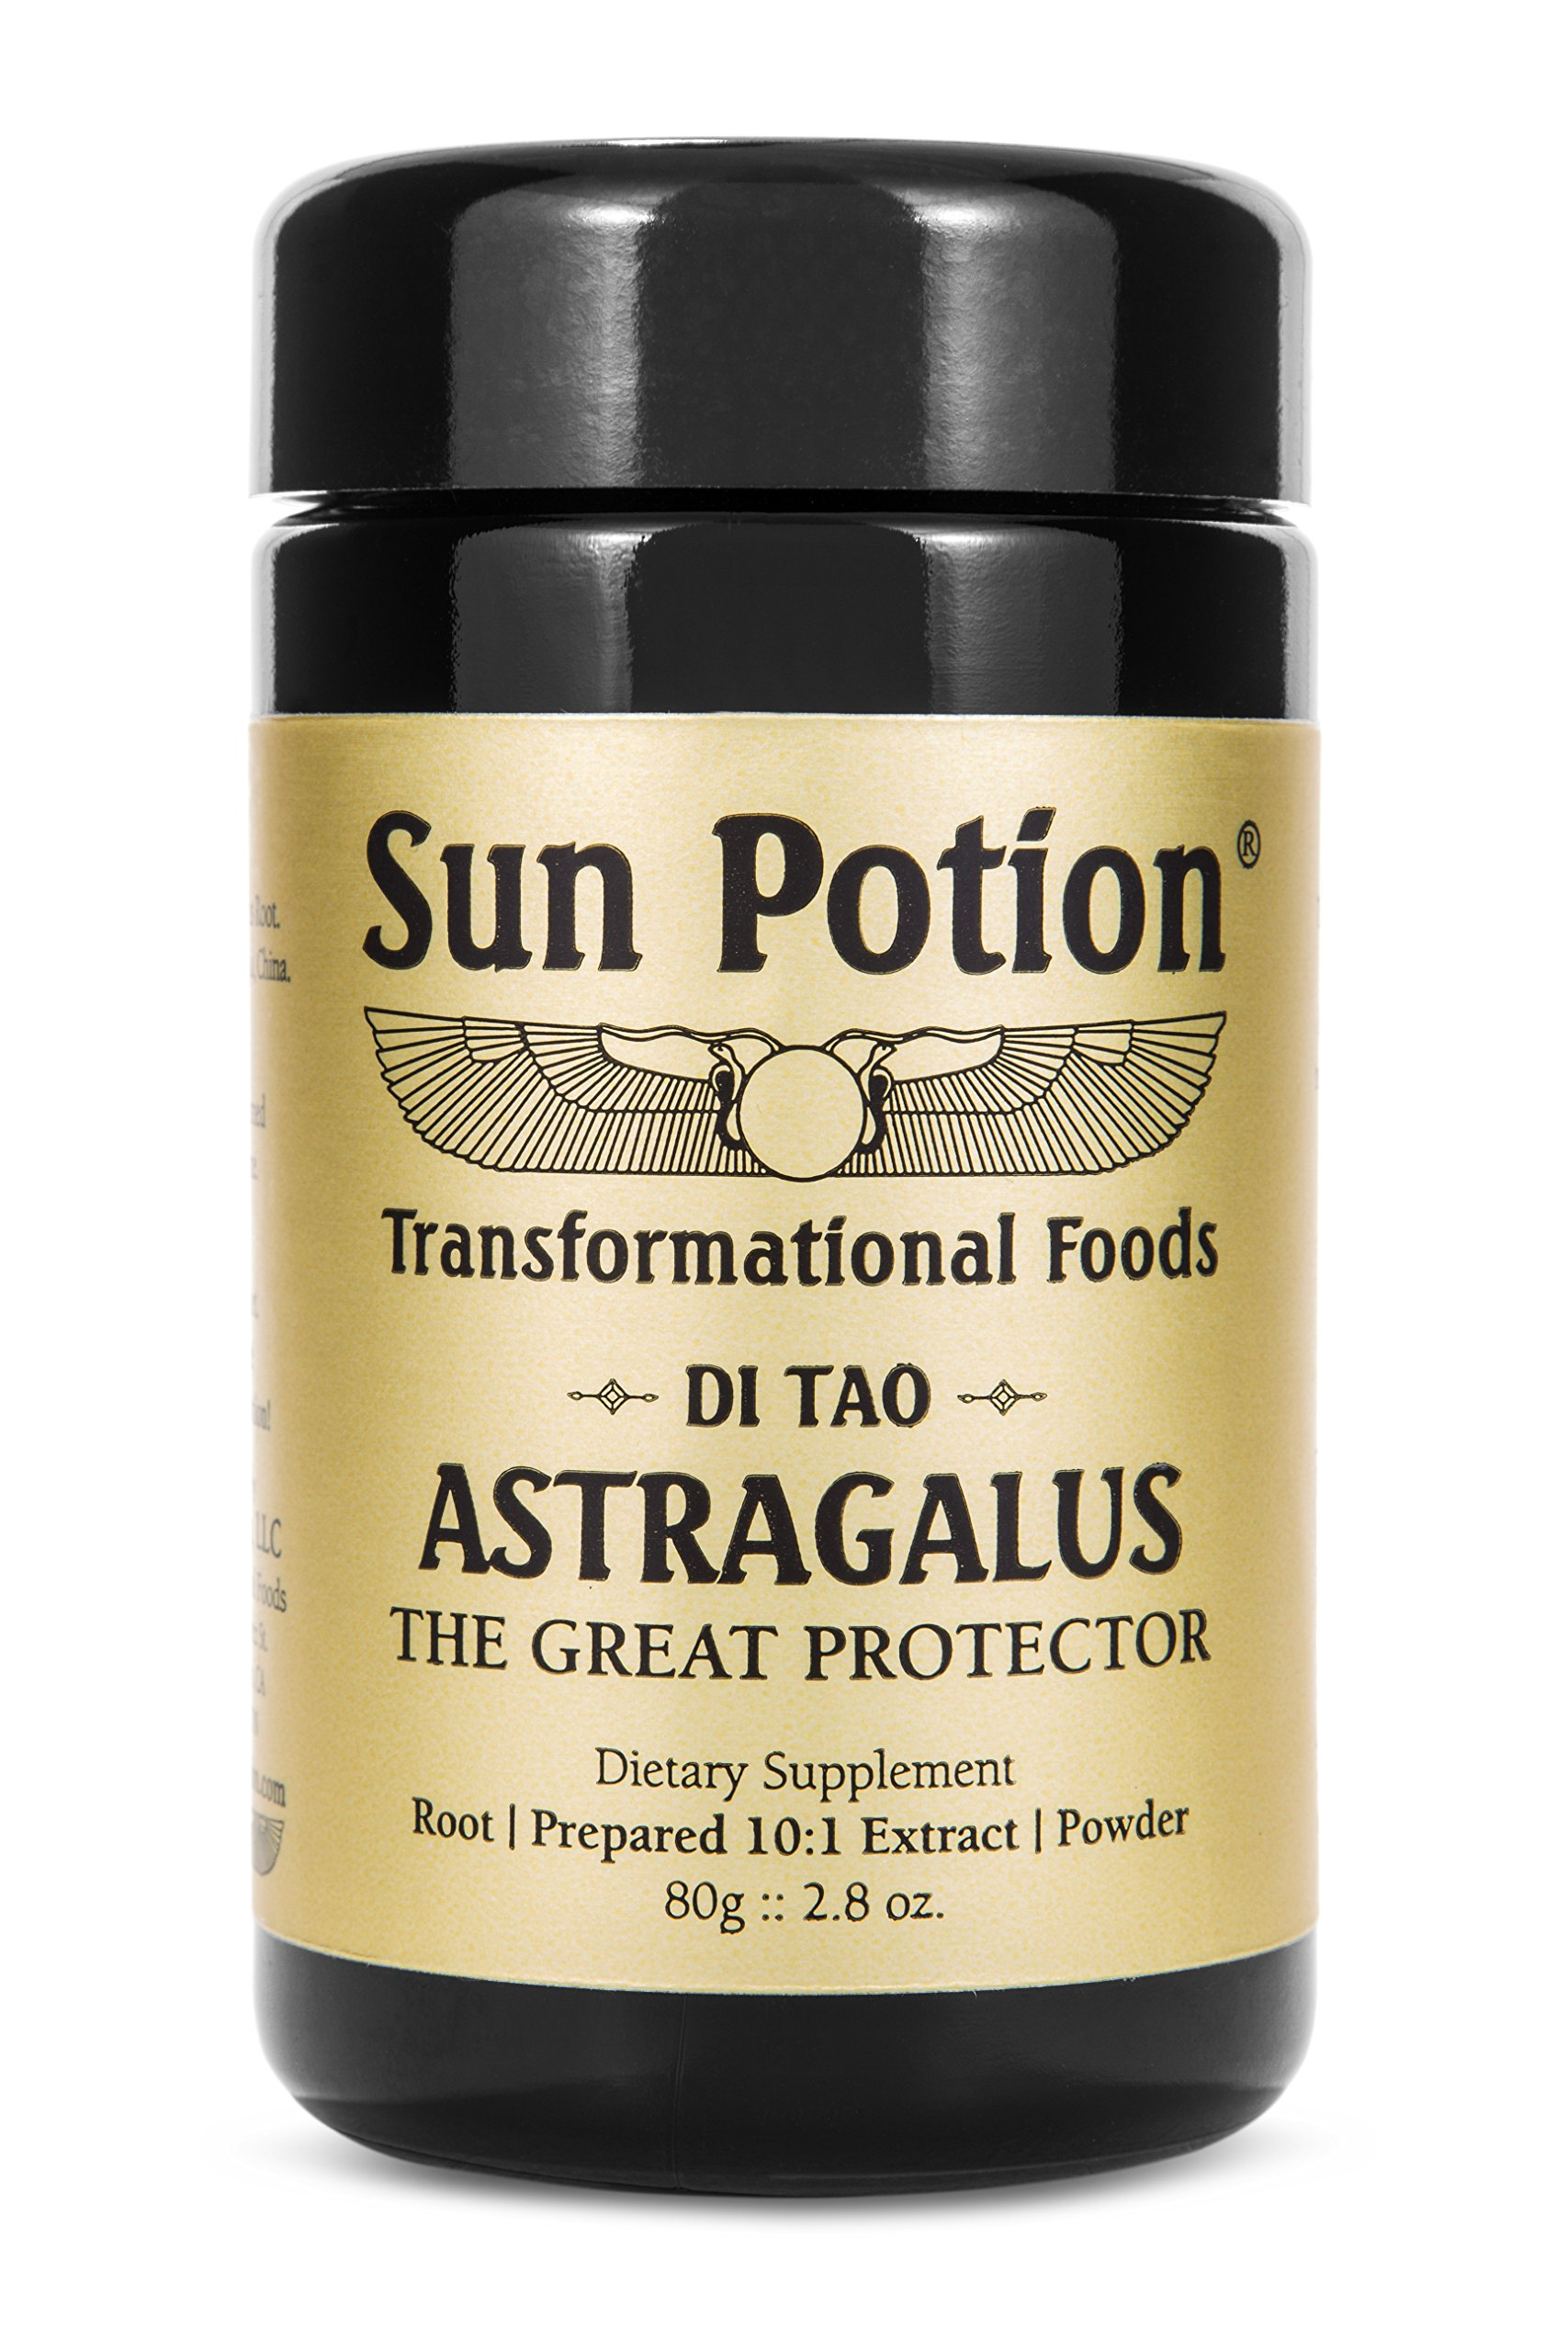 Astragalus Root Powder 80g Jar by Sun Potion - Organic, Wildcrafted Herbal Extract Supplement - Potent Qi Tonic - Immune System, Metabolism, and Digestion Support